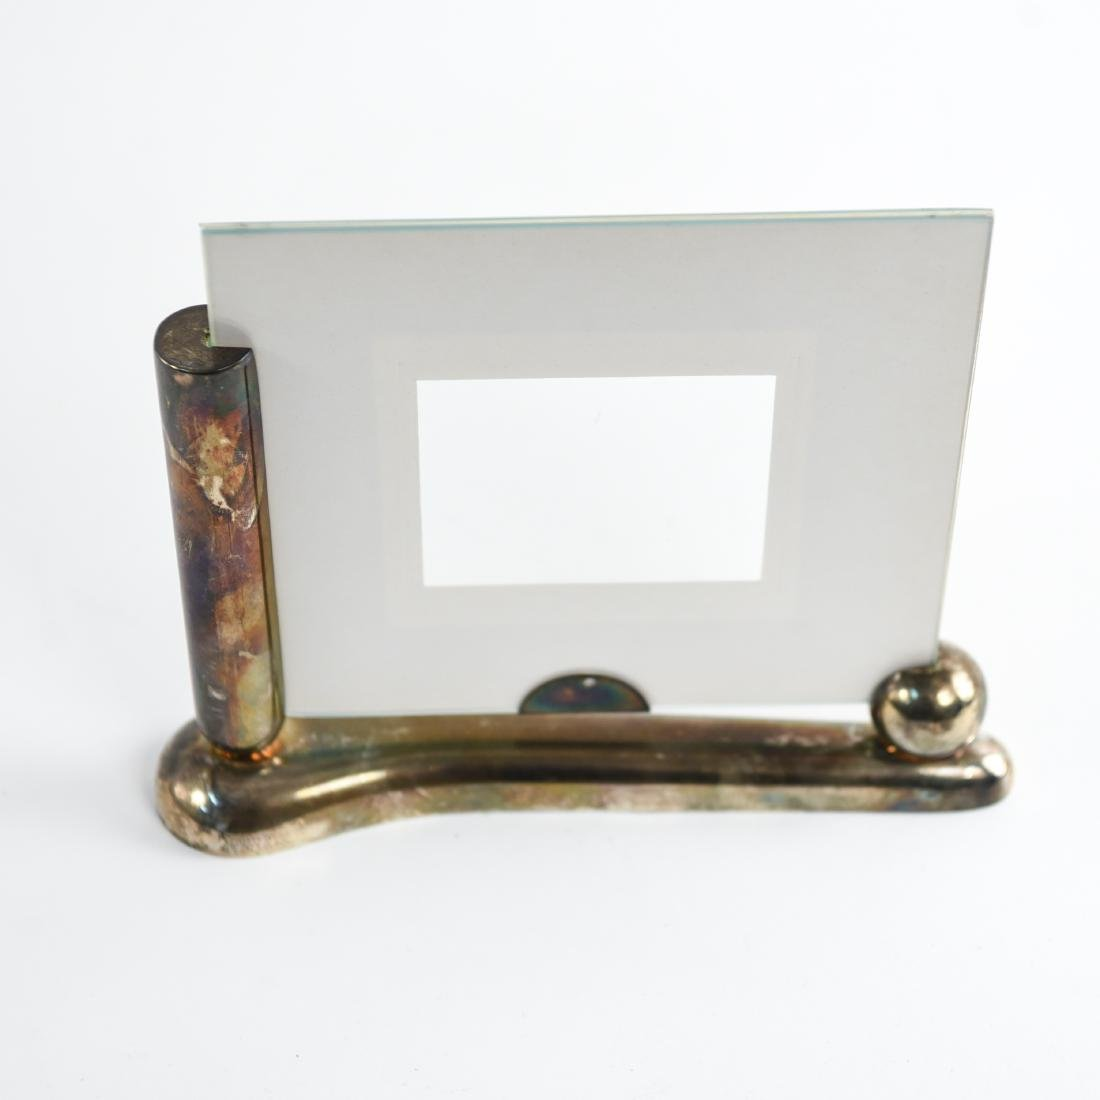 SILVER ART DECO PICTURE FRAME - 2